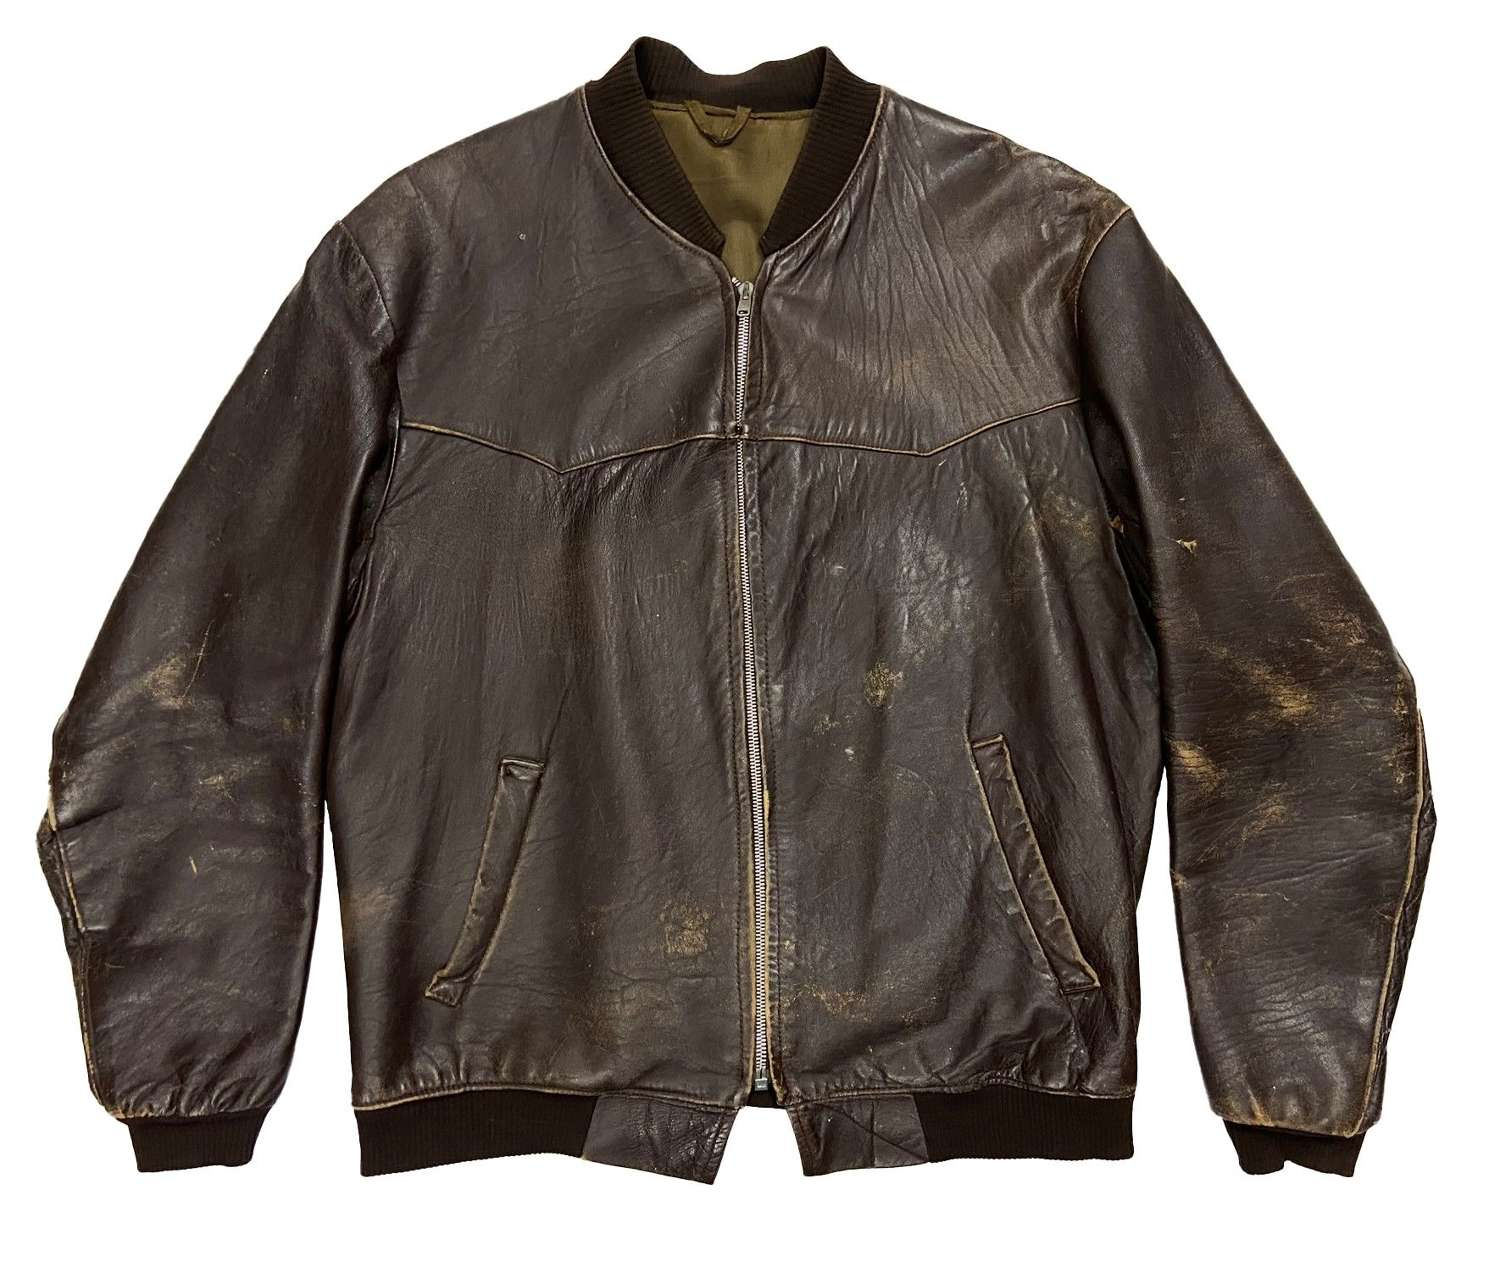 Original 1960s British Leather Bomber Jacket